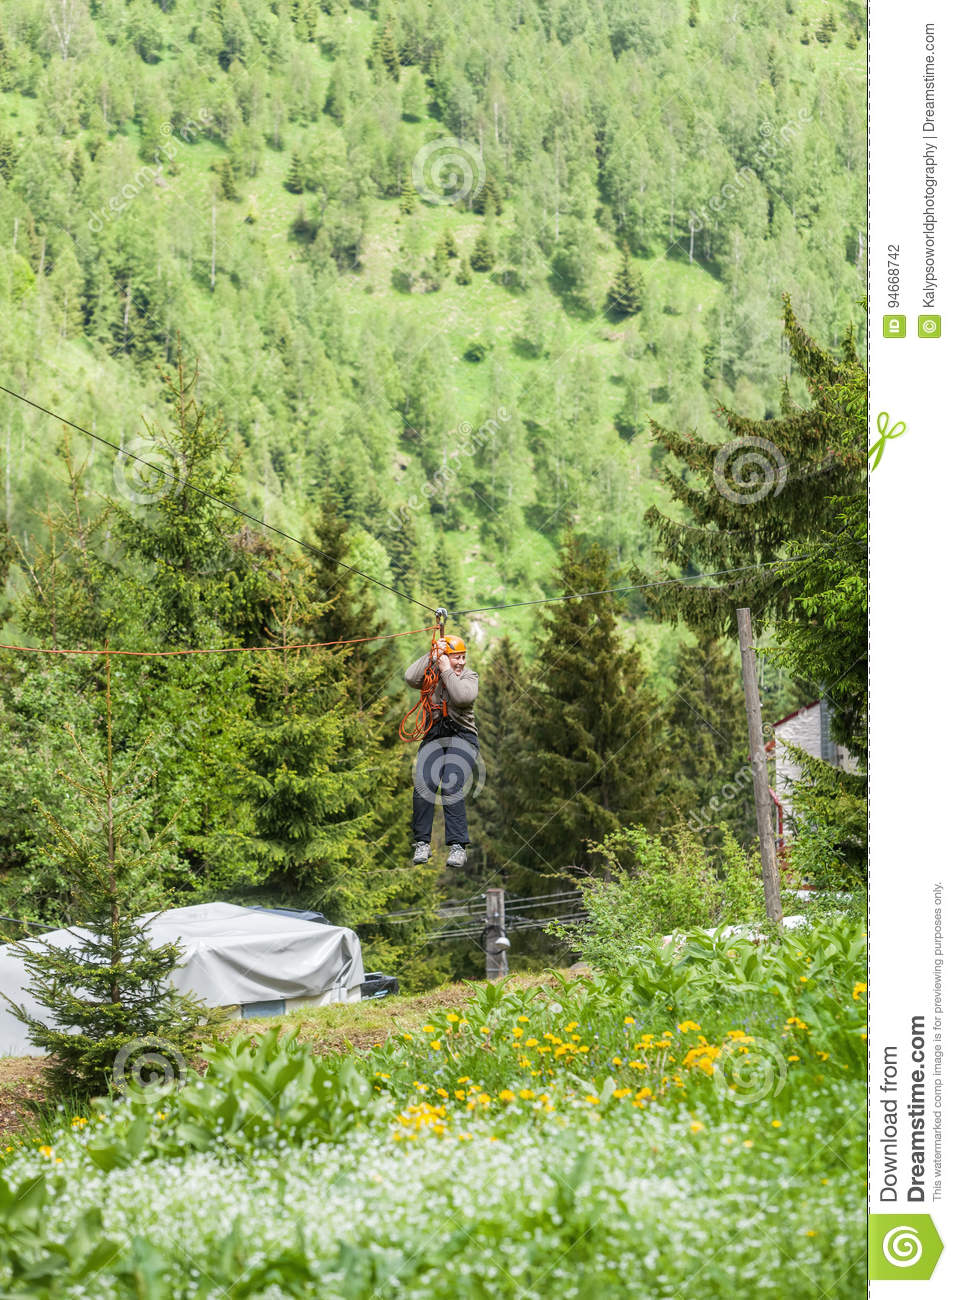 Romanian Woman Wearing Casual Clothing On Zip-Line